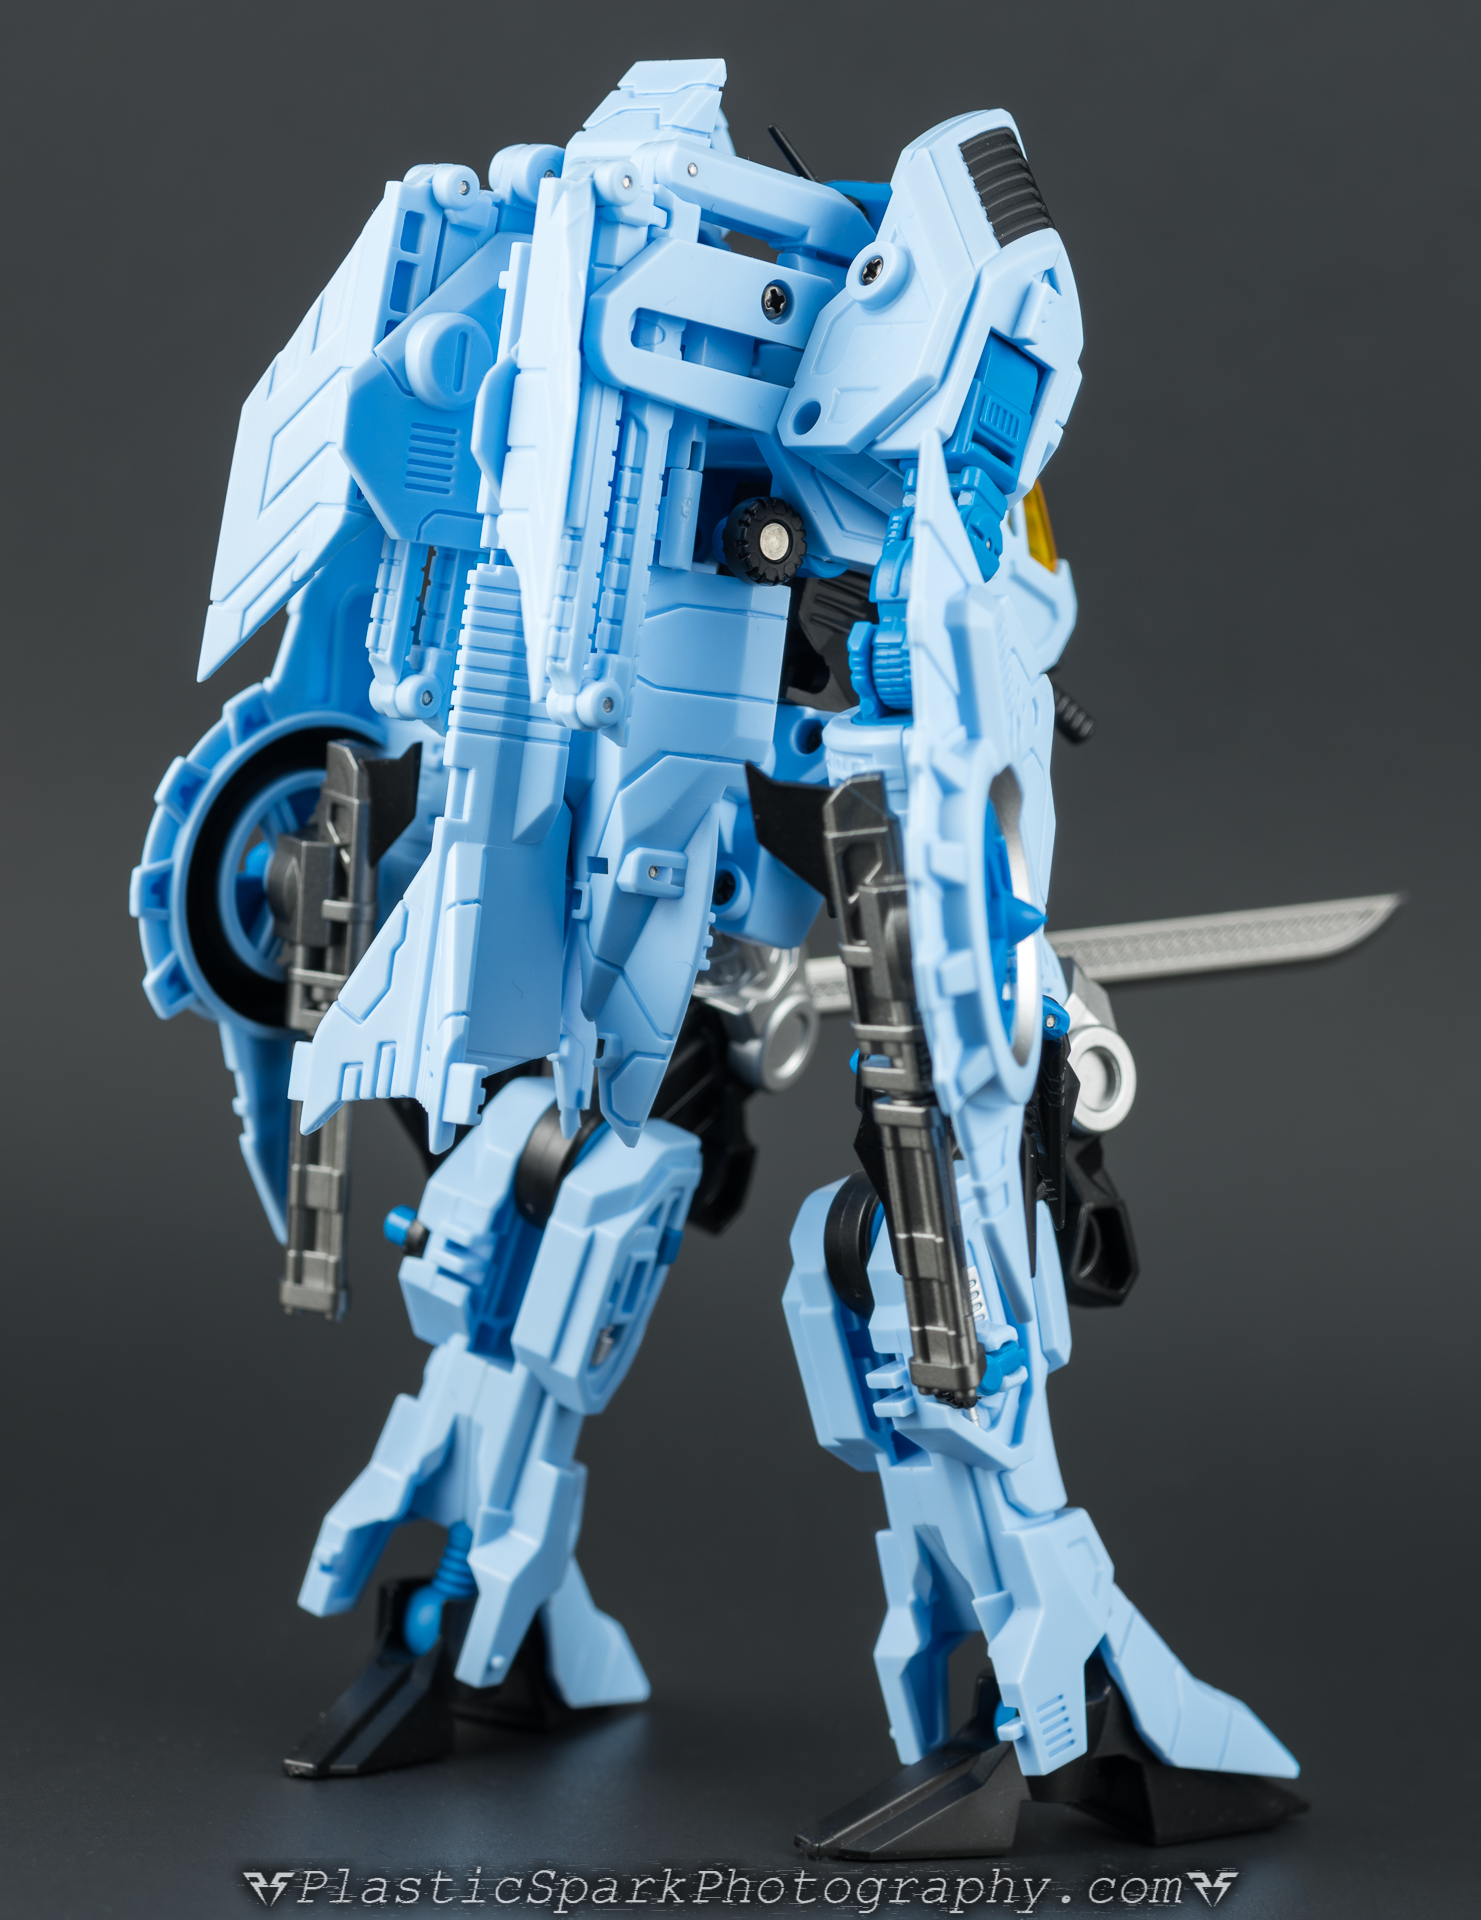 Mastermind-Creations-R-24-Turben-(33-of-34).png